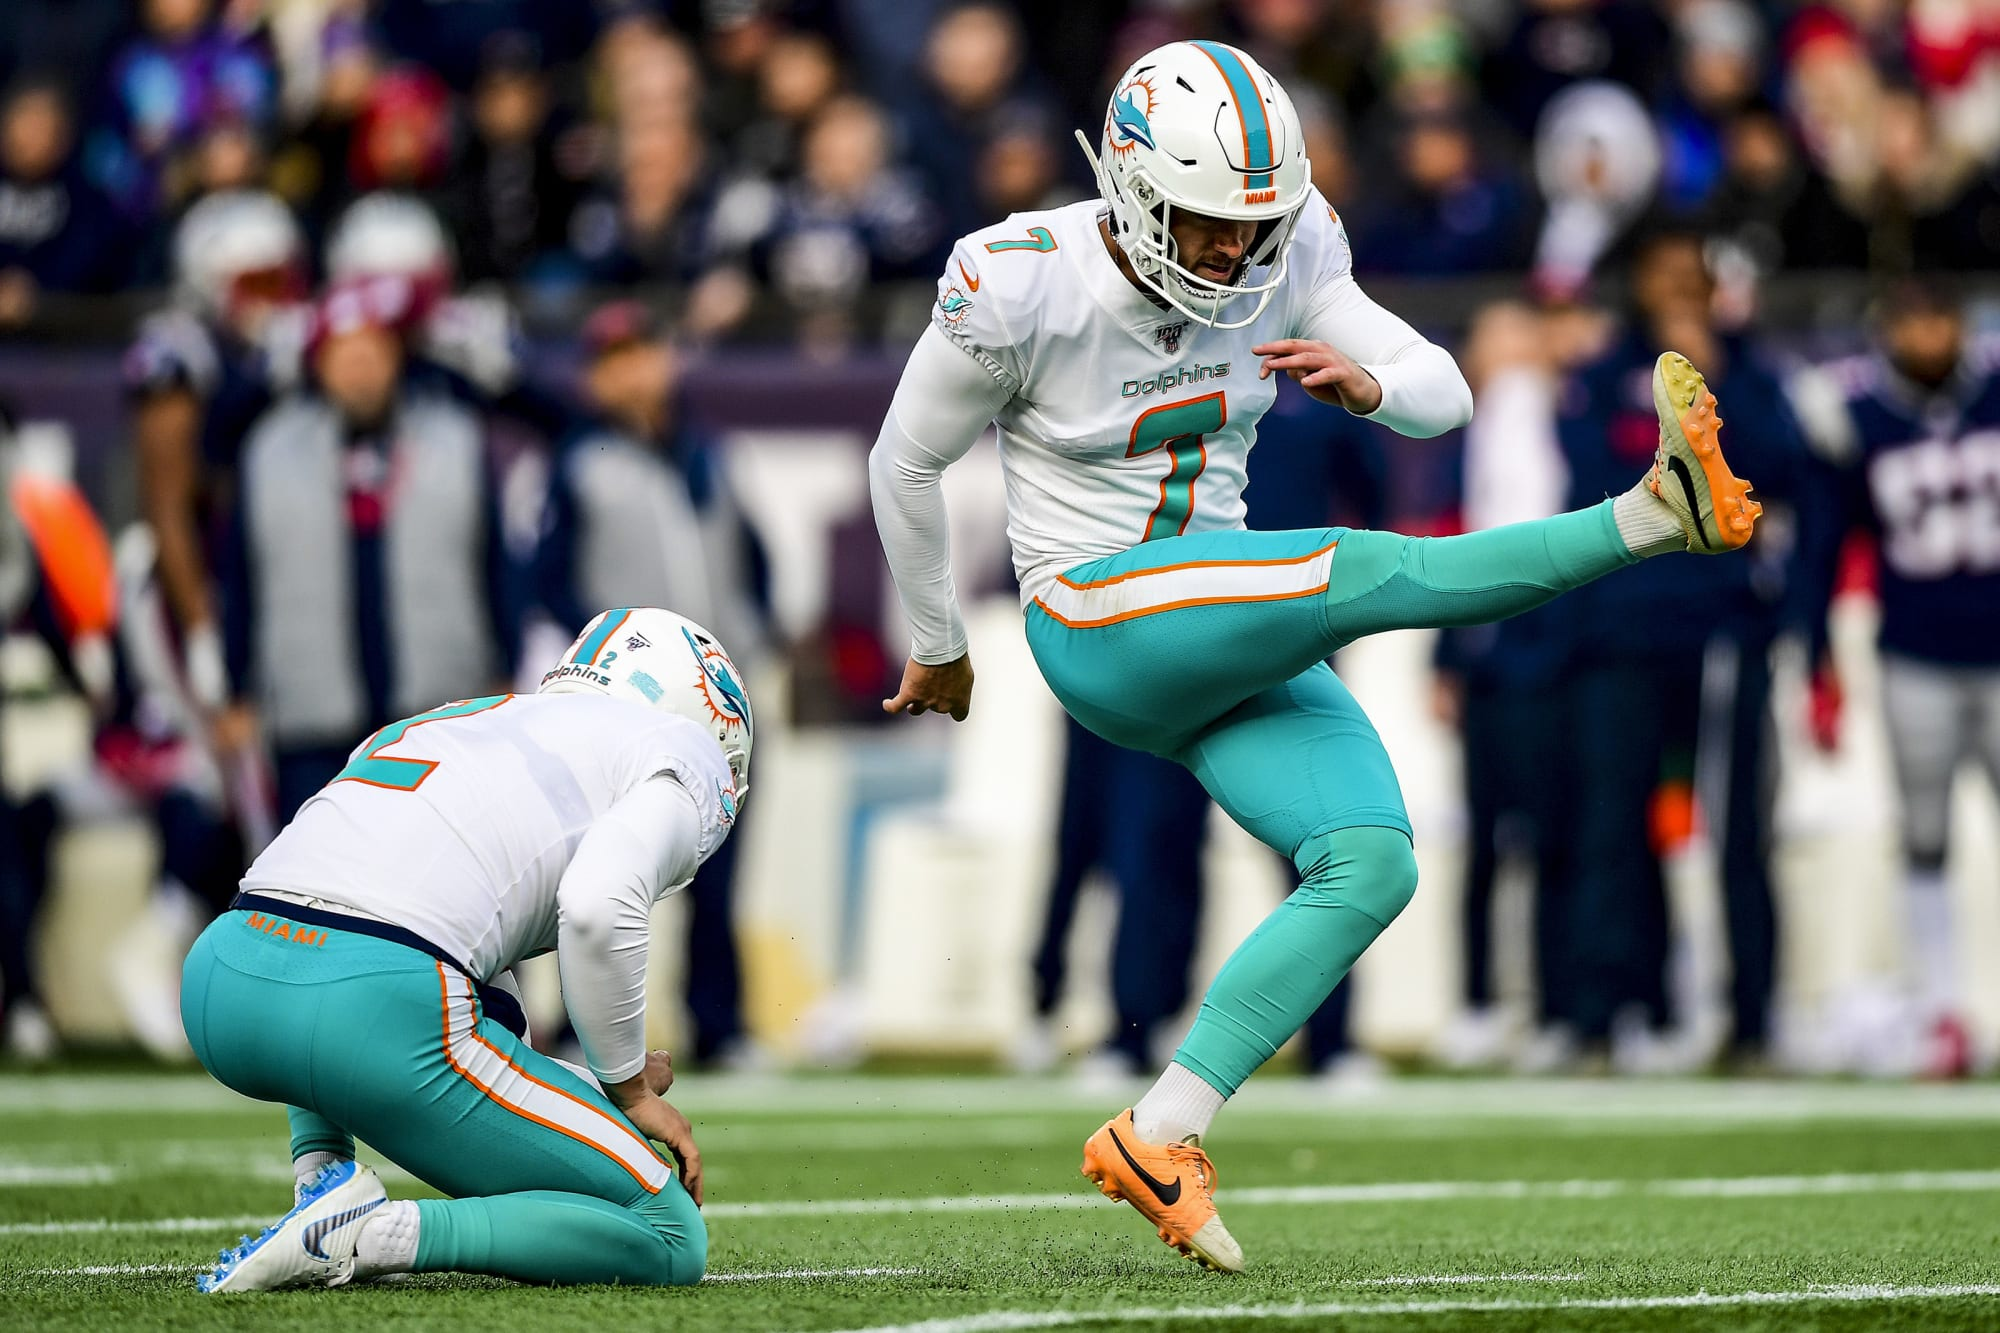 Miami Dolphins 2020 player preview: Jason Sanders